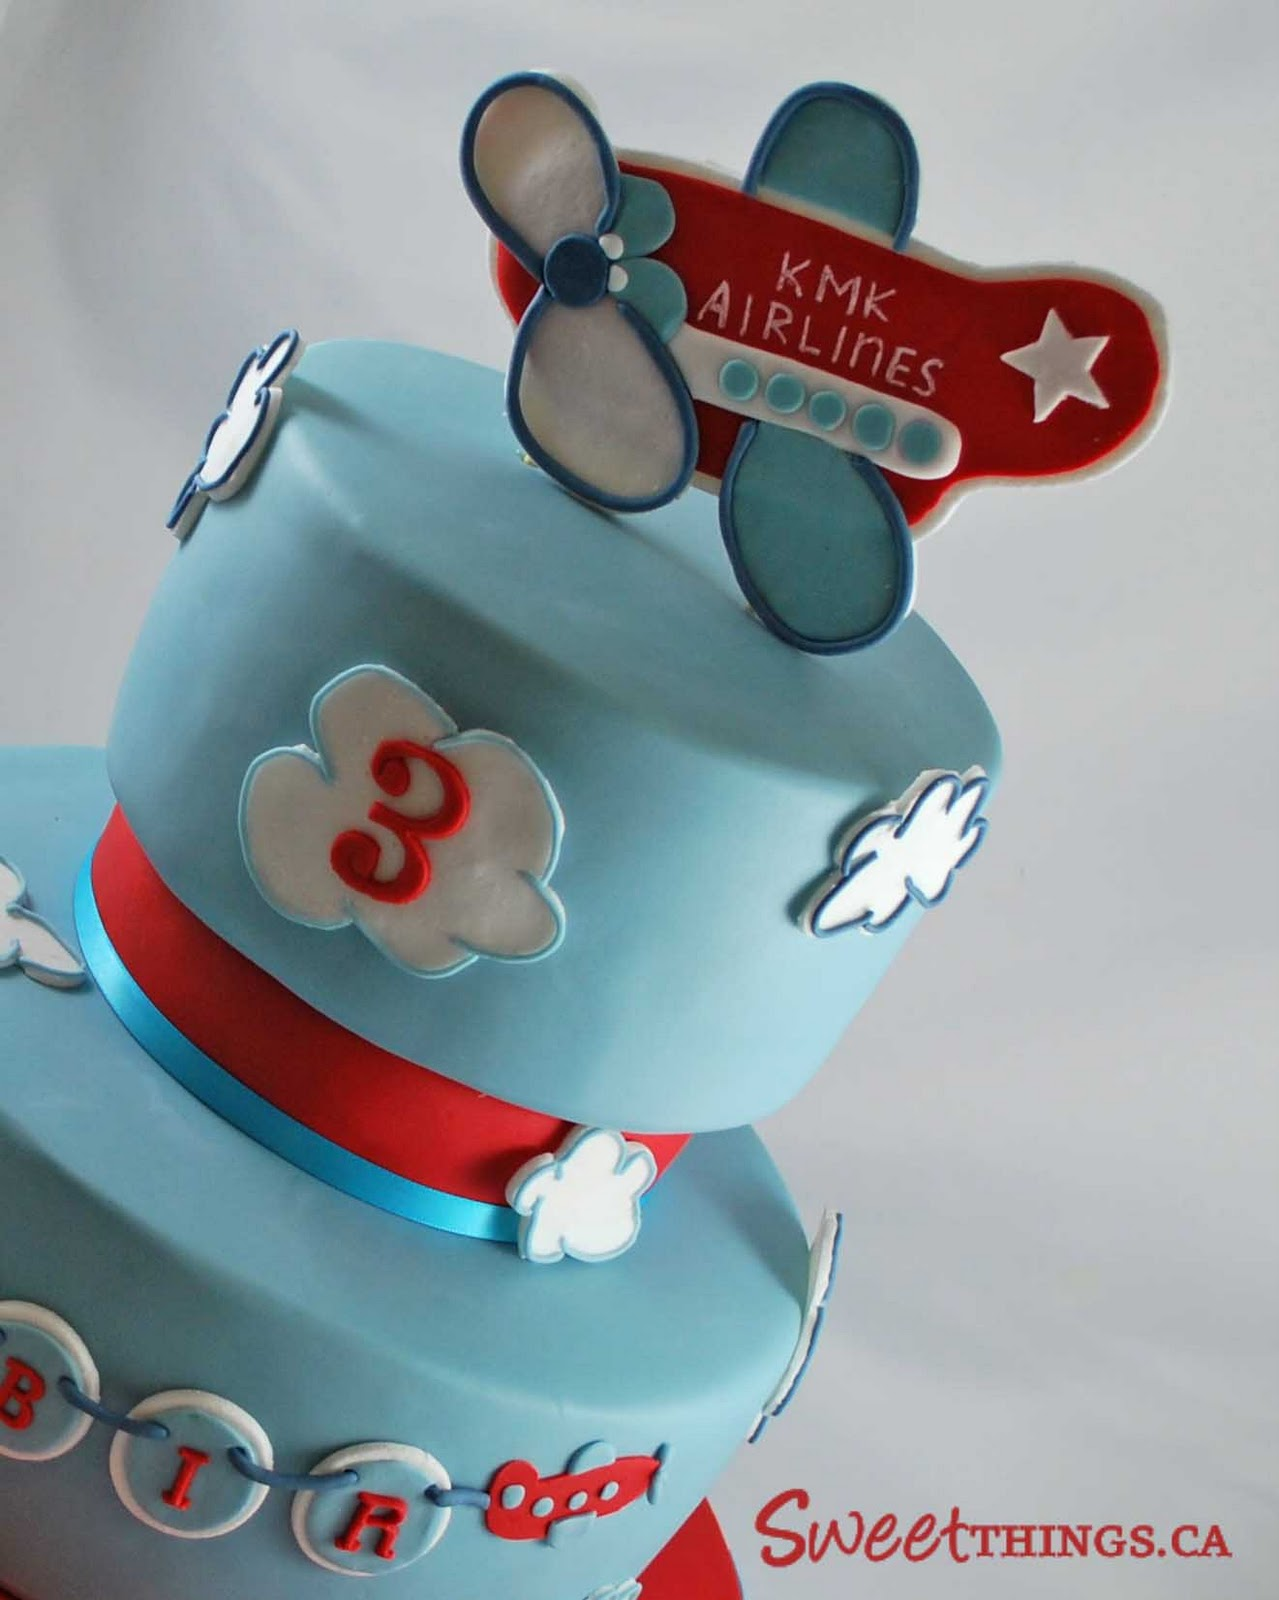 Sweetthings 3rd Birthday Cake Cute Airplane Cake